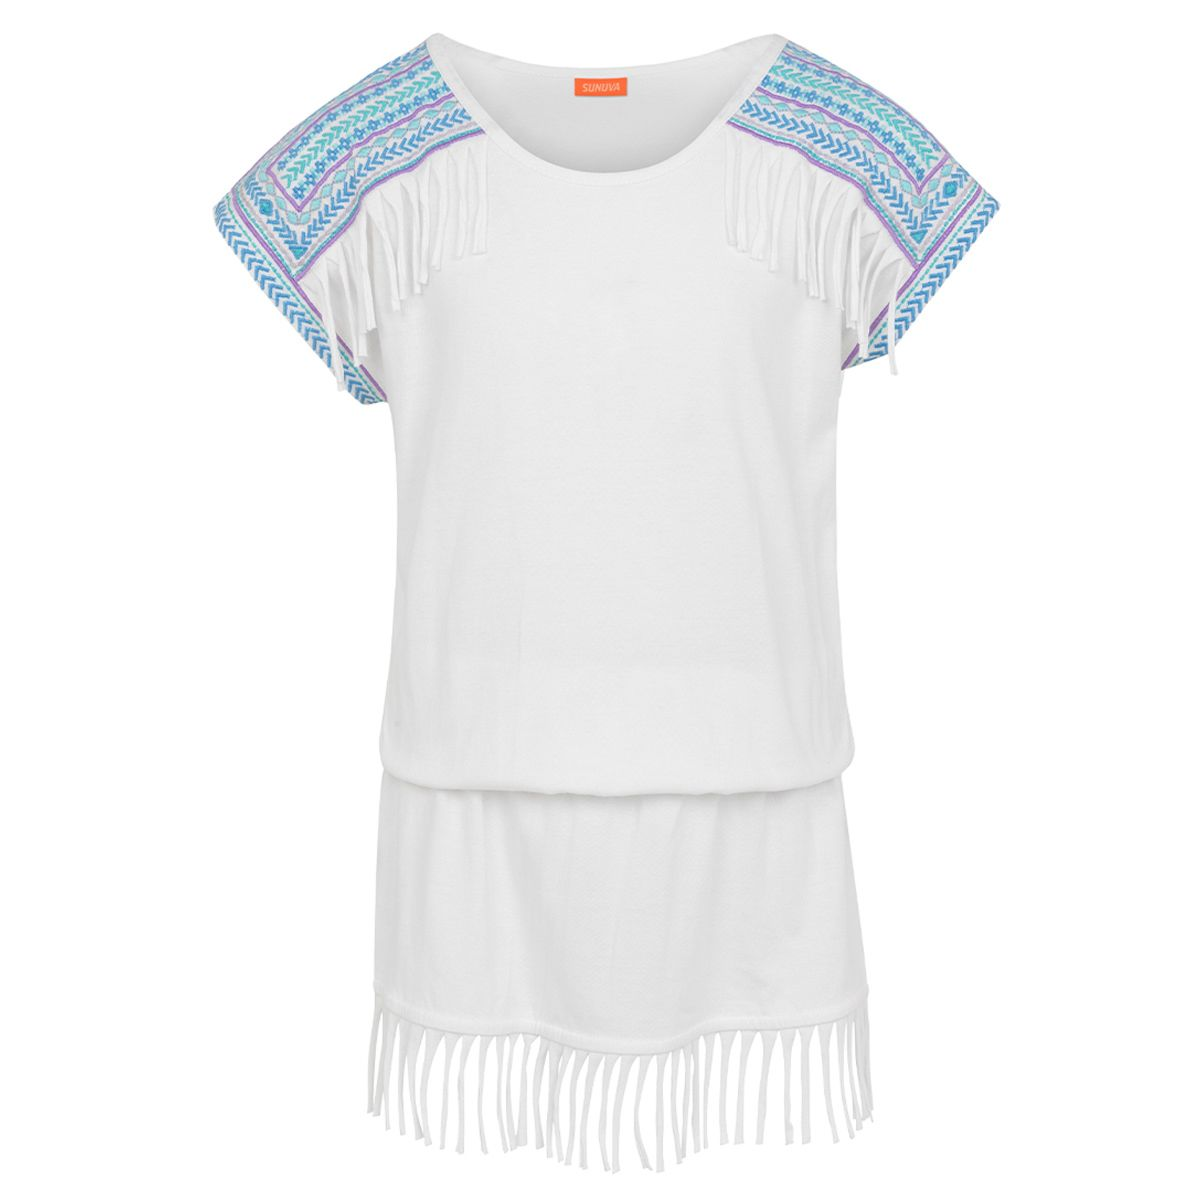 Sunuva Girls White embroidered jersey dress